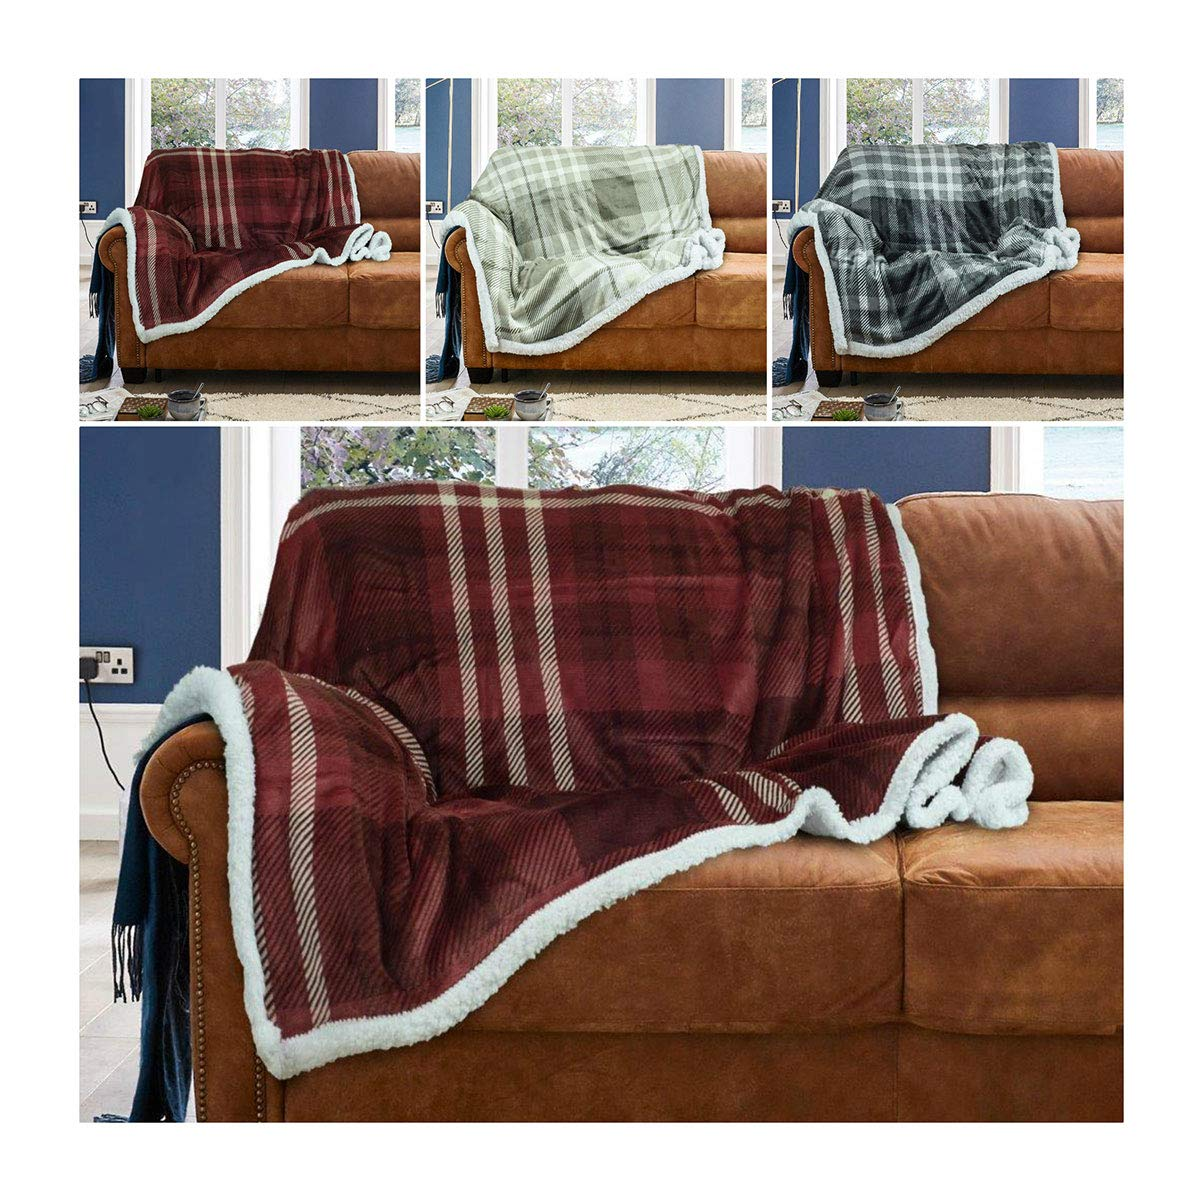 Sherpa Throws Blanket Wiltshire Flannel Fleece Luxury Sofa Bed Large Soft Warm